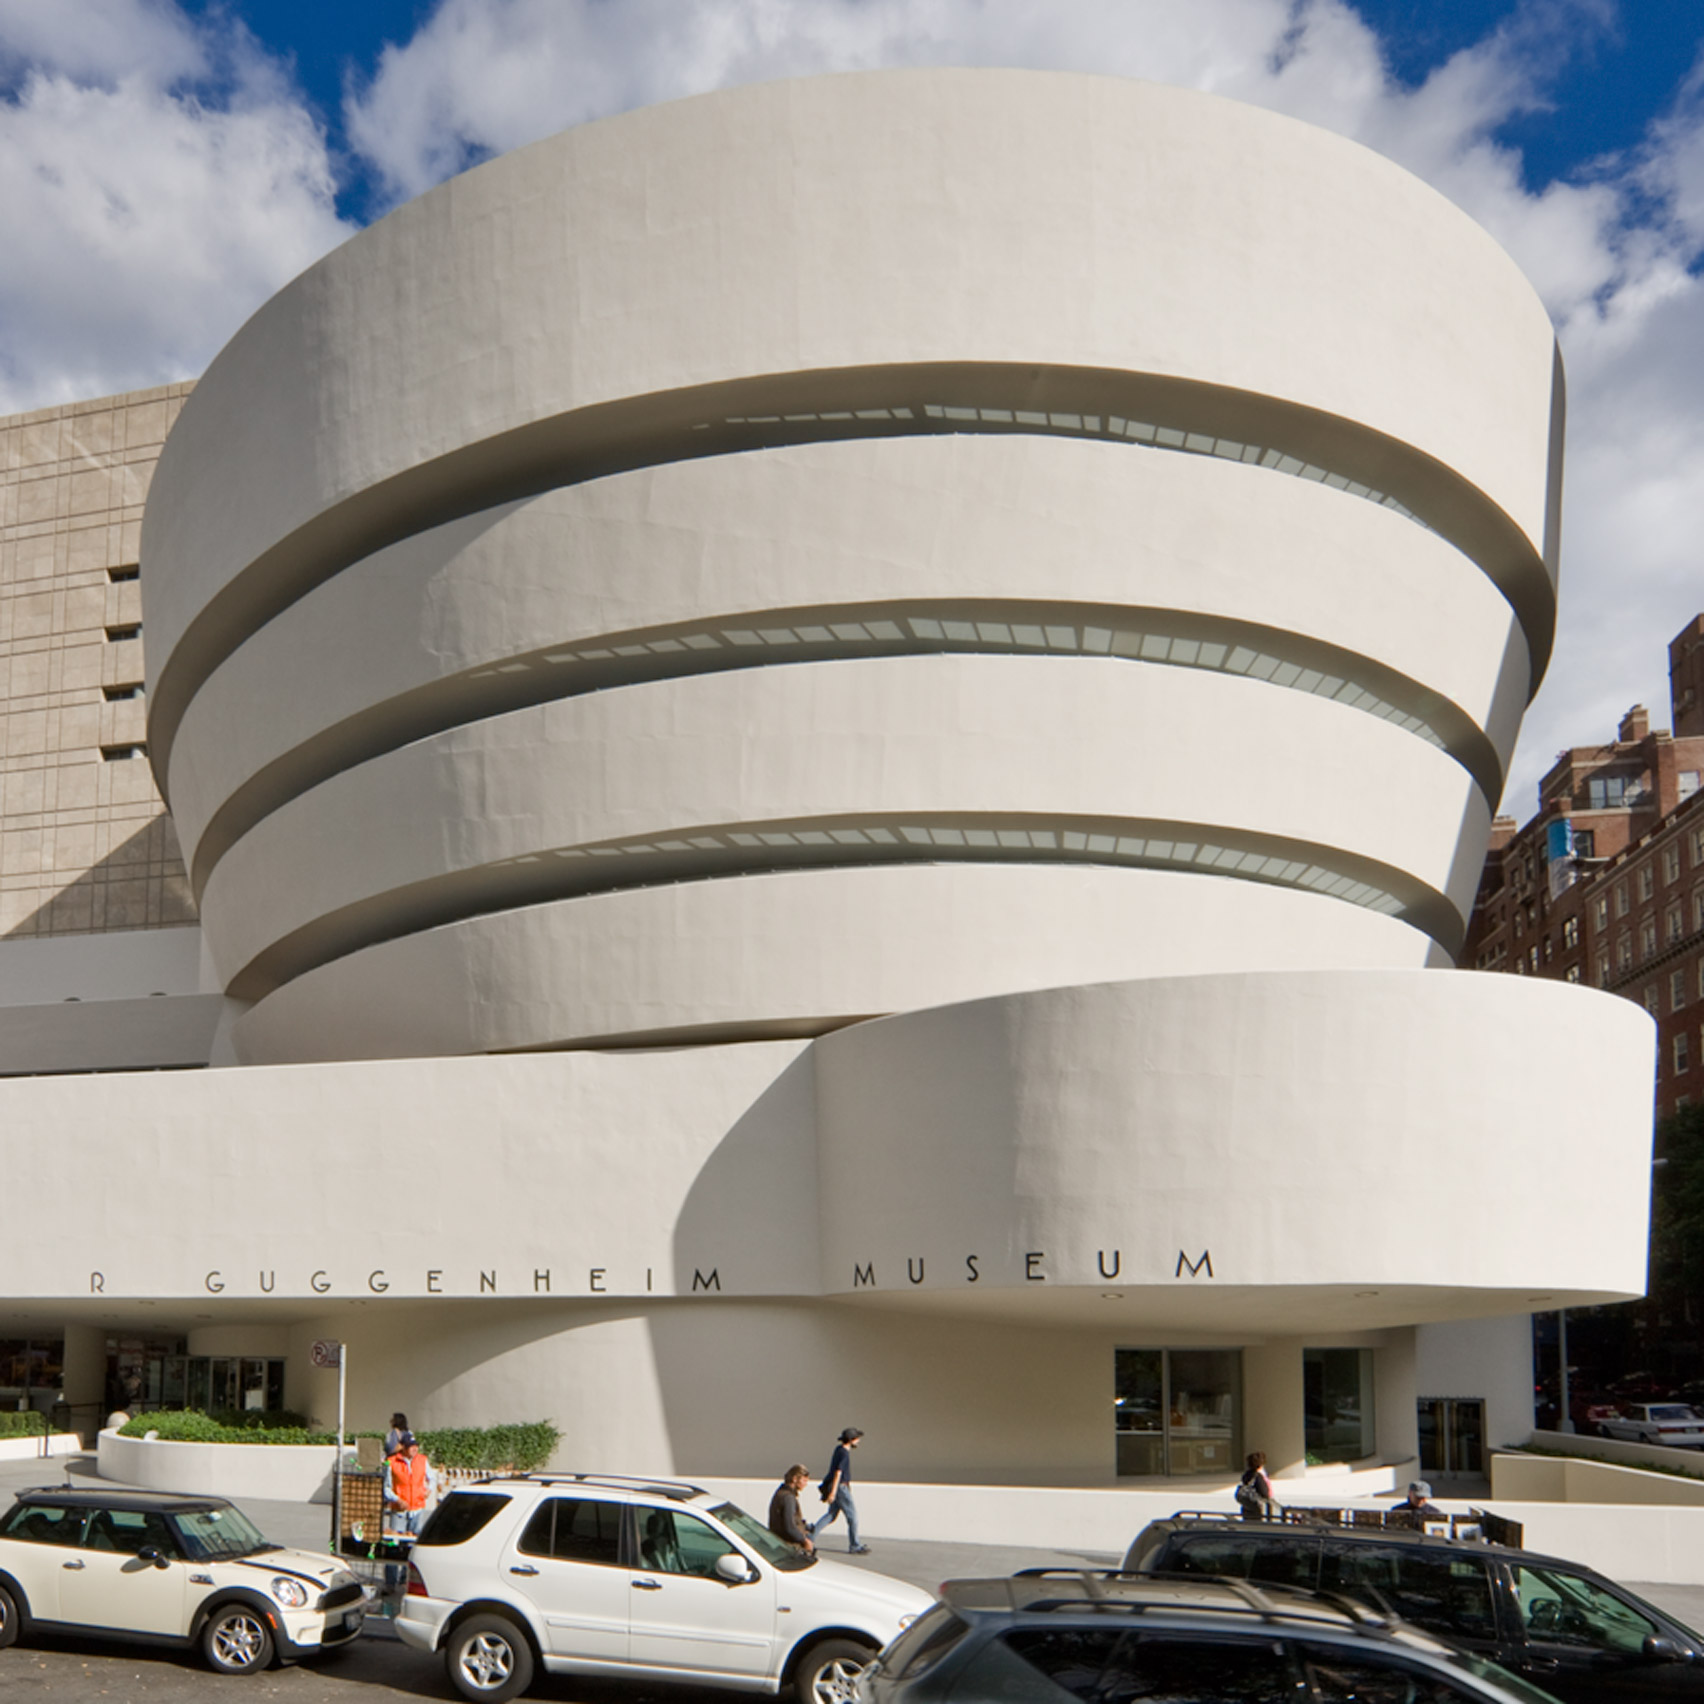 Bien-aimé Guggenheim Museum news and exhibitions | Dezeen GE05